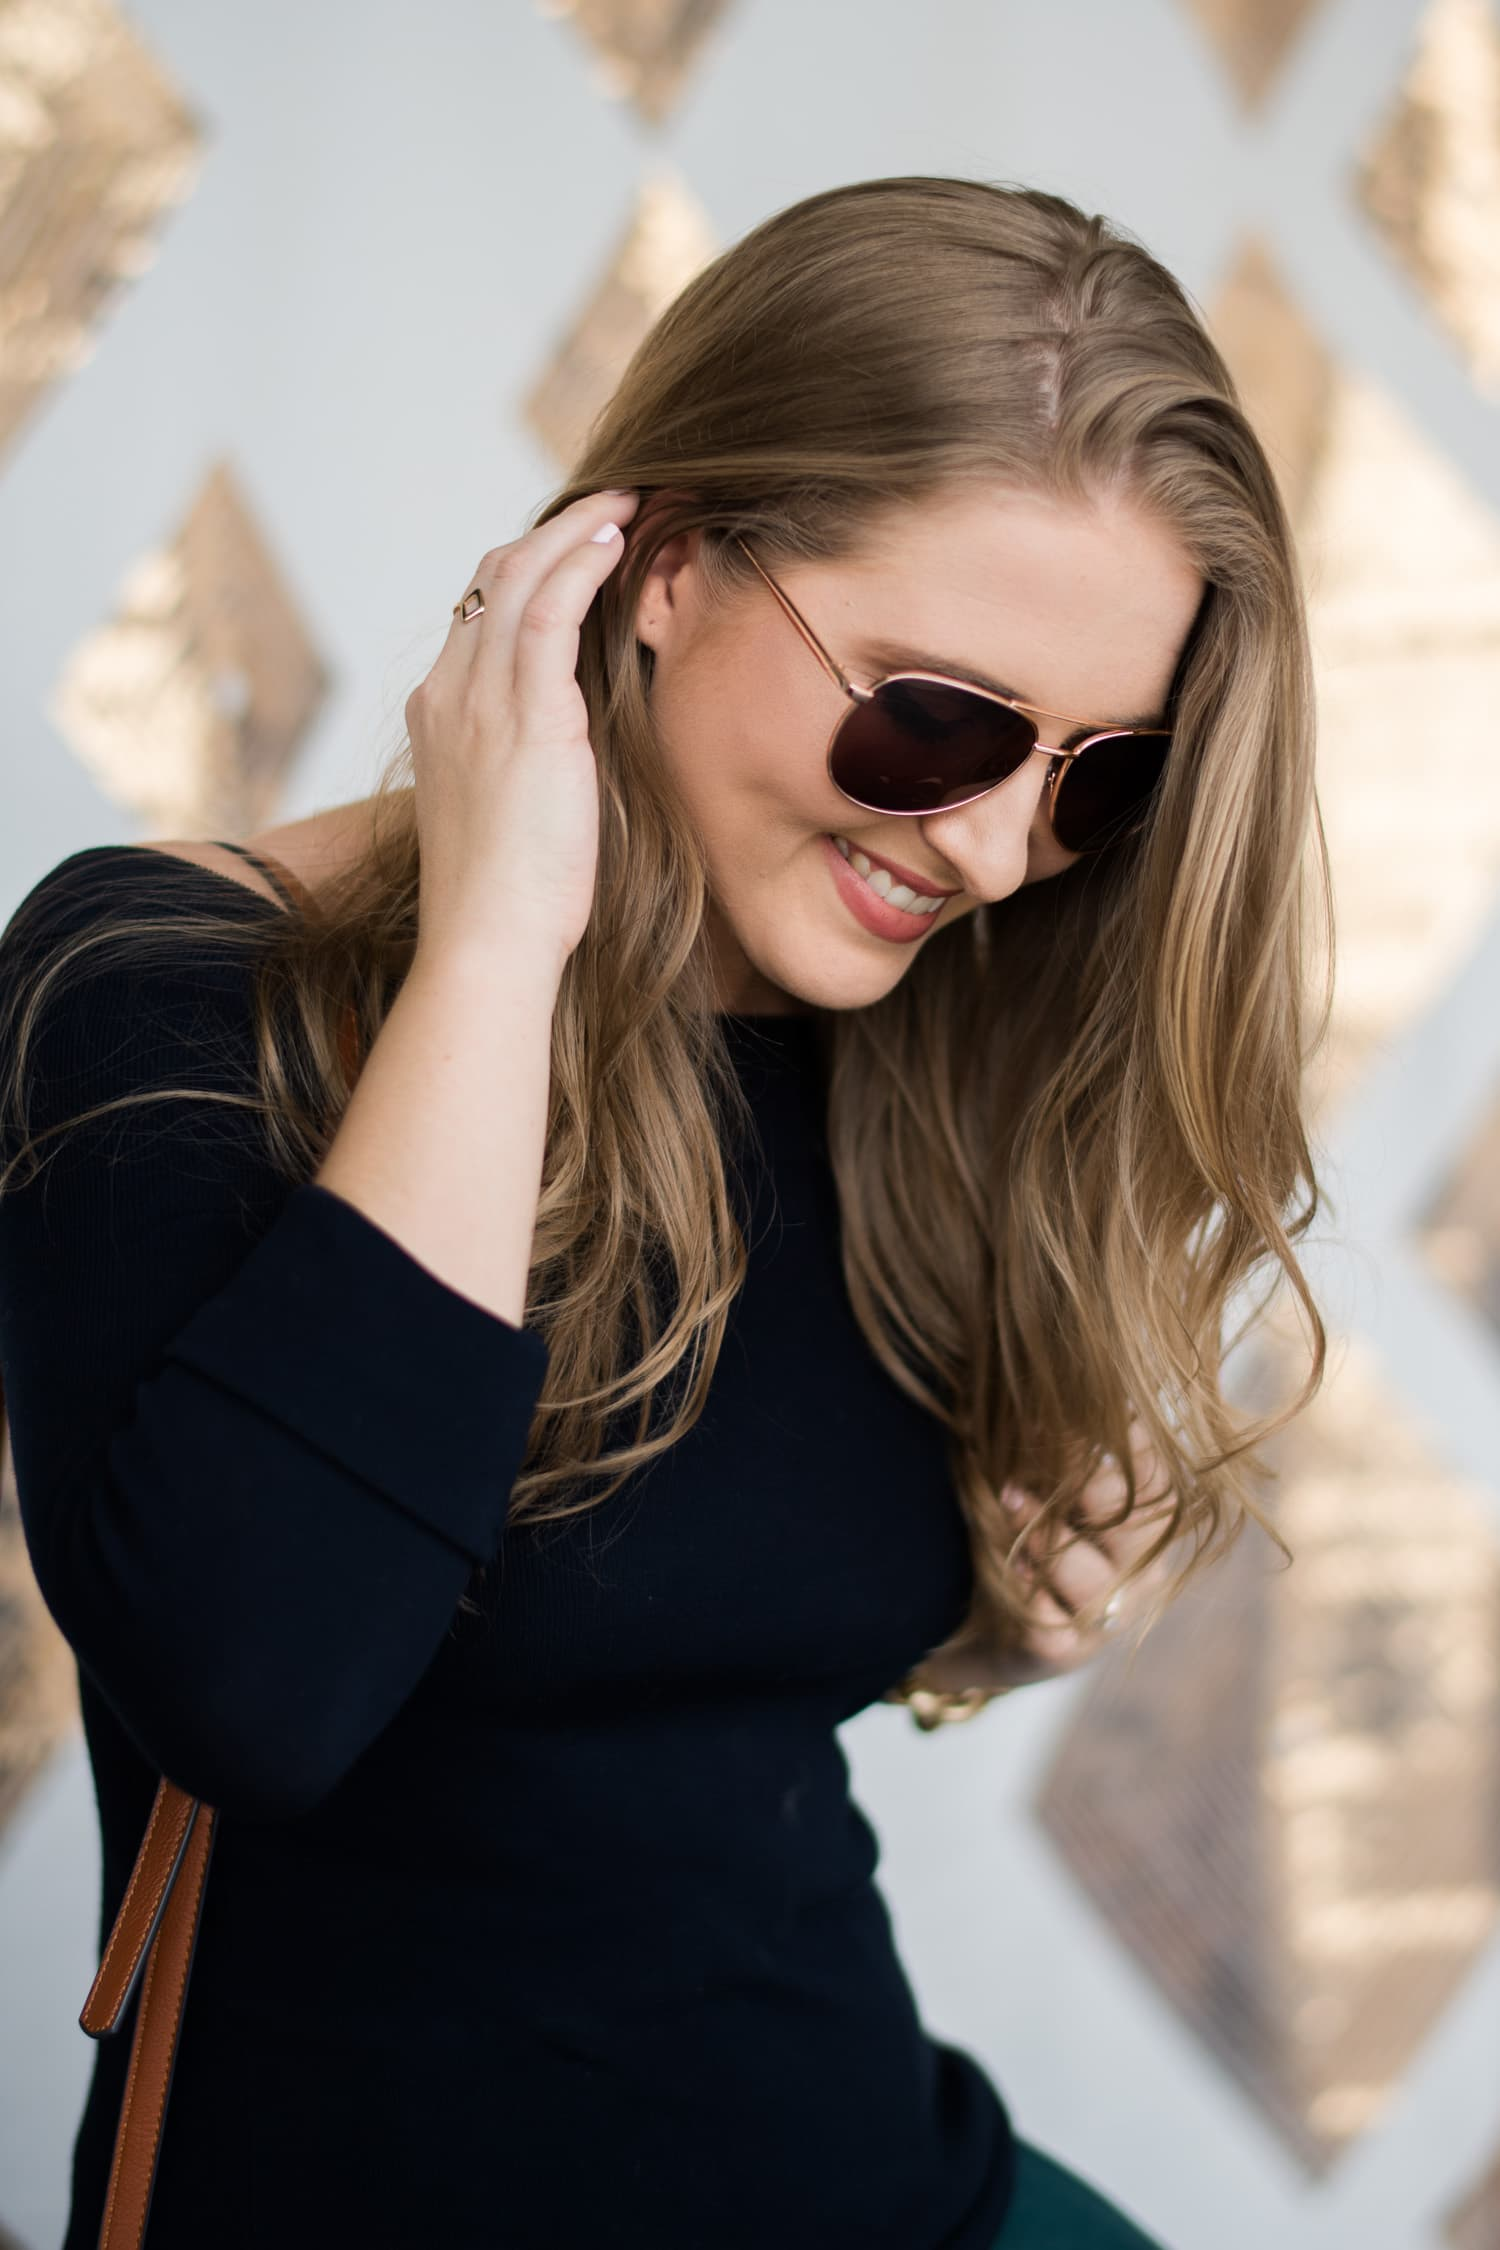 rose-gold-aviator-sunglasses-foster-grant-store-opening-florida-mall-3317